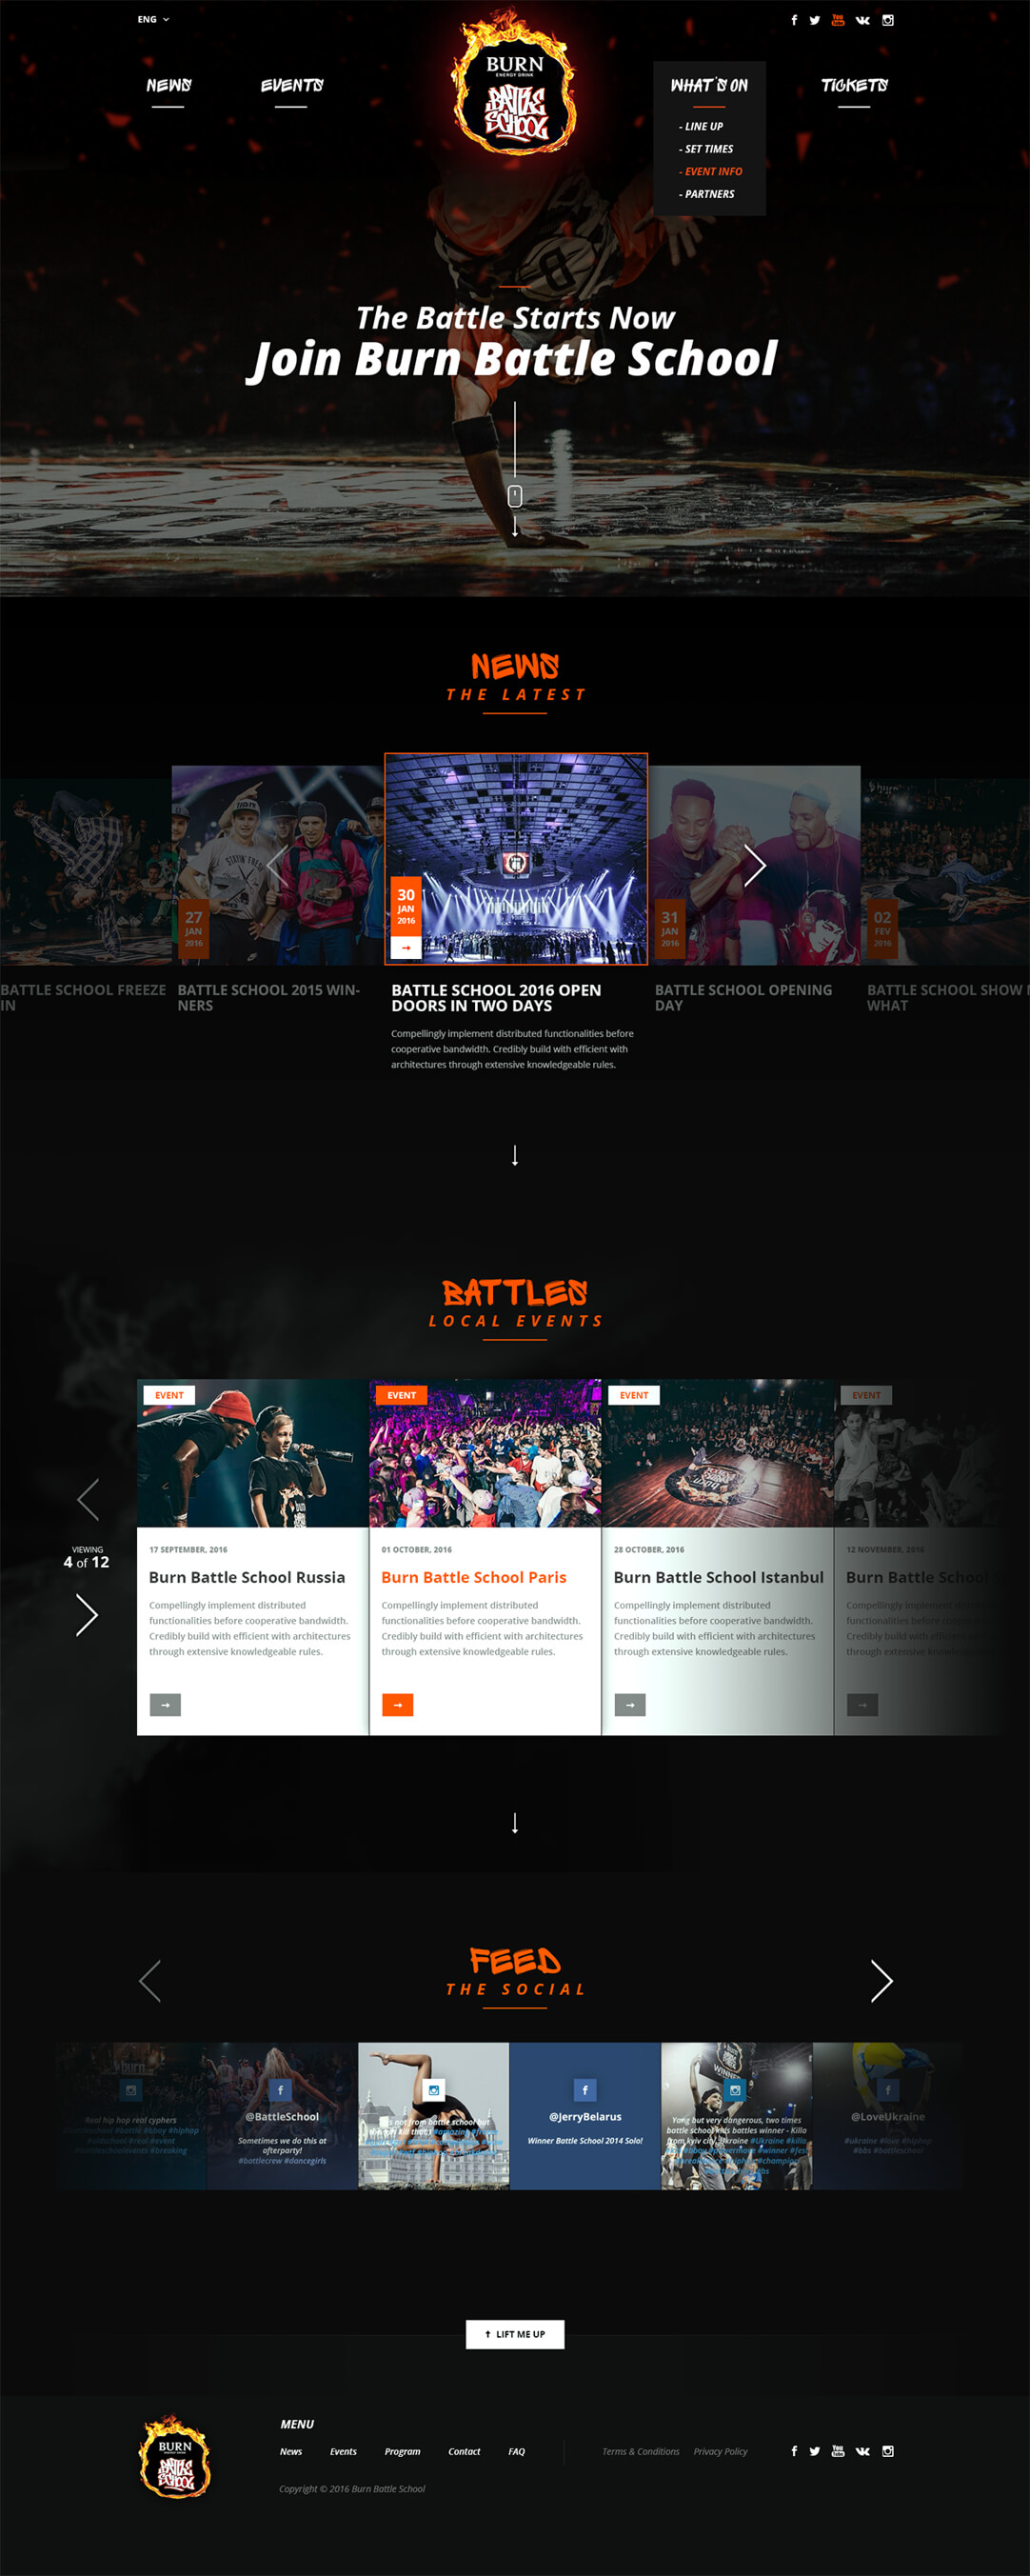 Burn Battleschool, Ekko Media web design, video production and marketing